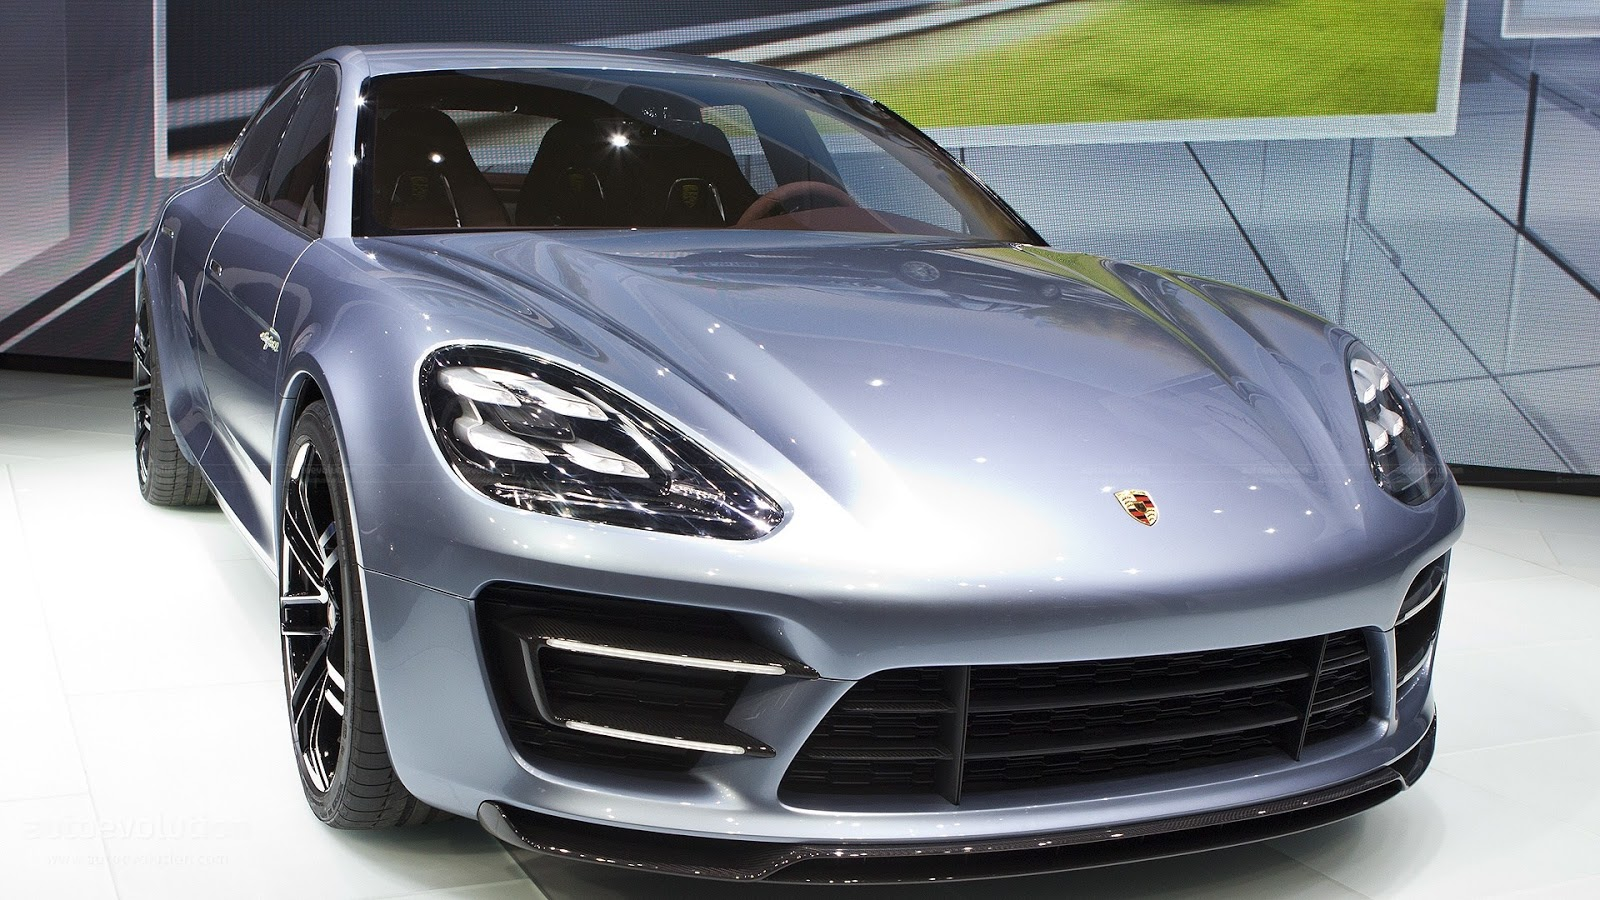 Price Of Porsche Panamera 15 Wide Car Wallpaper